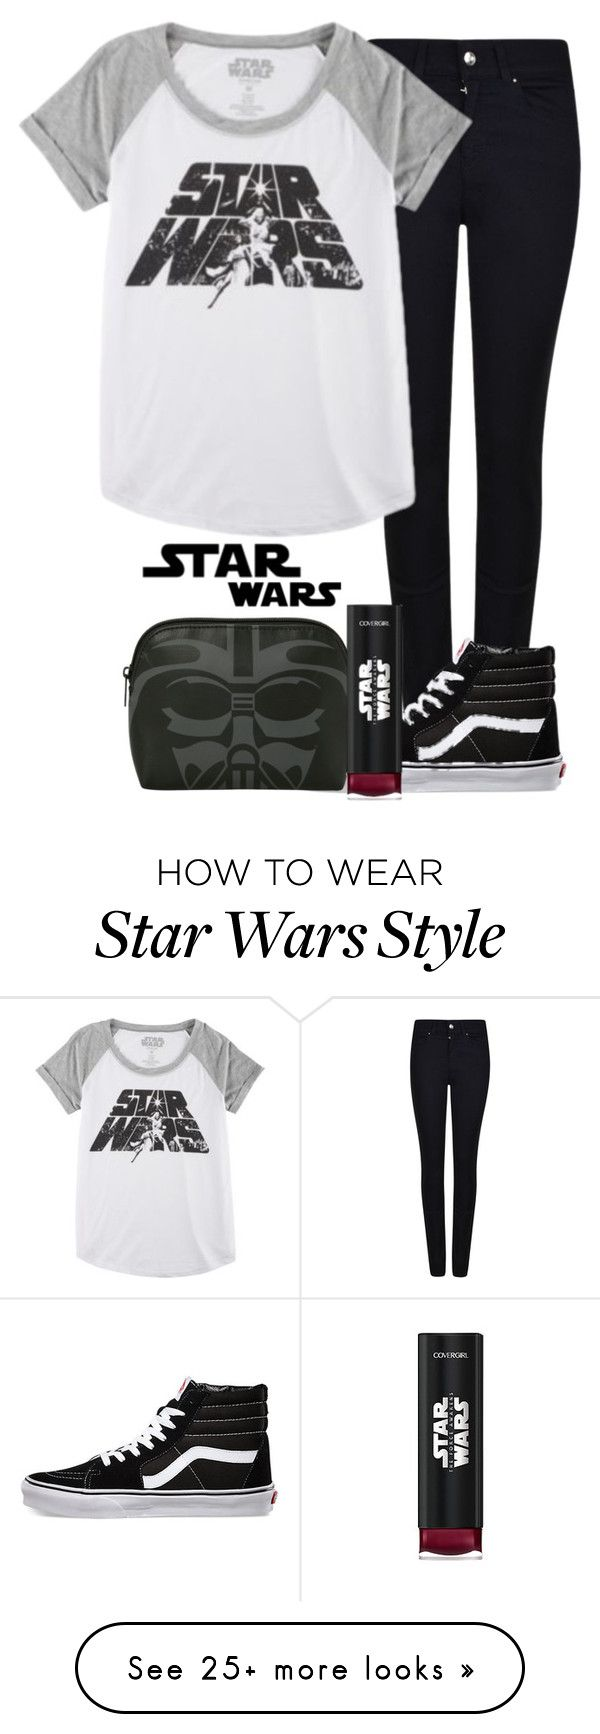 best 25 star wars tshirt ideas on pinterest star wars shirt